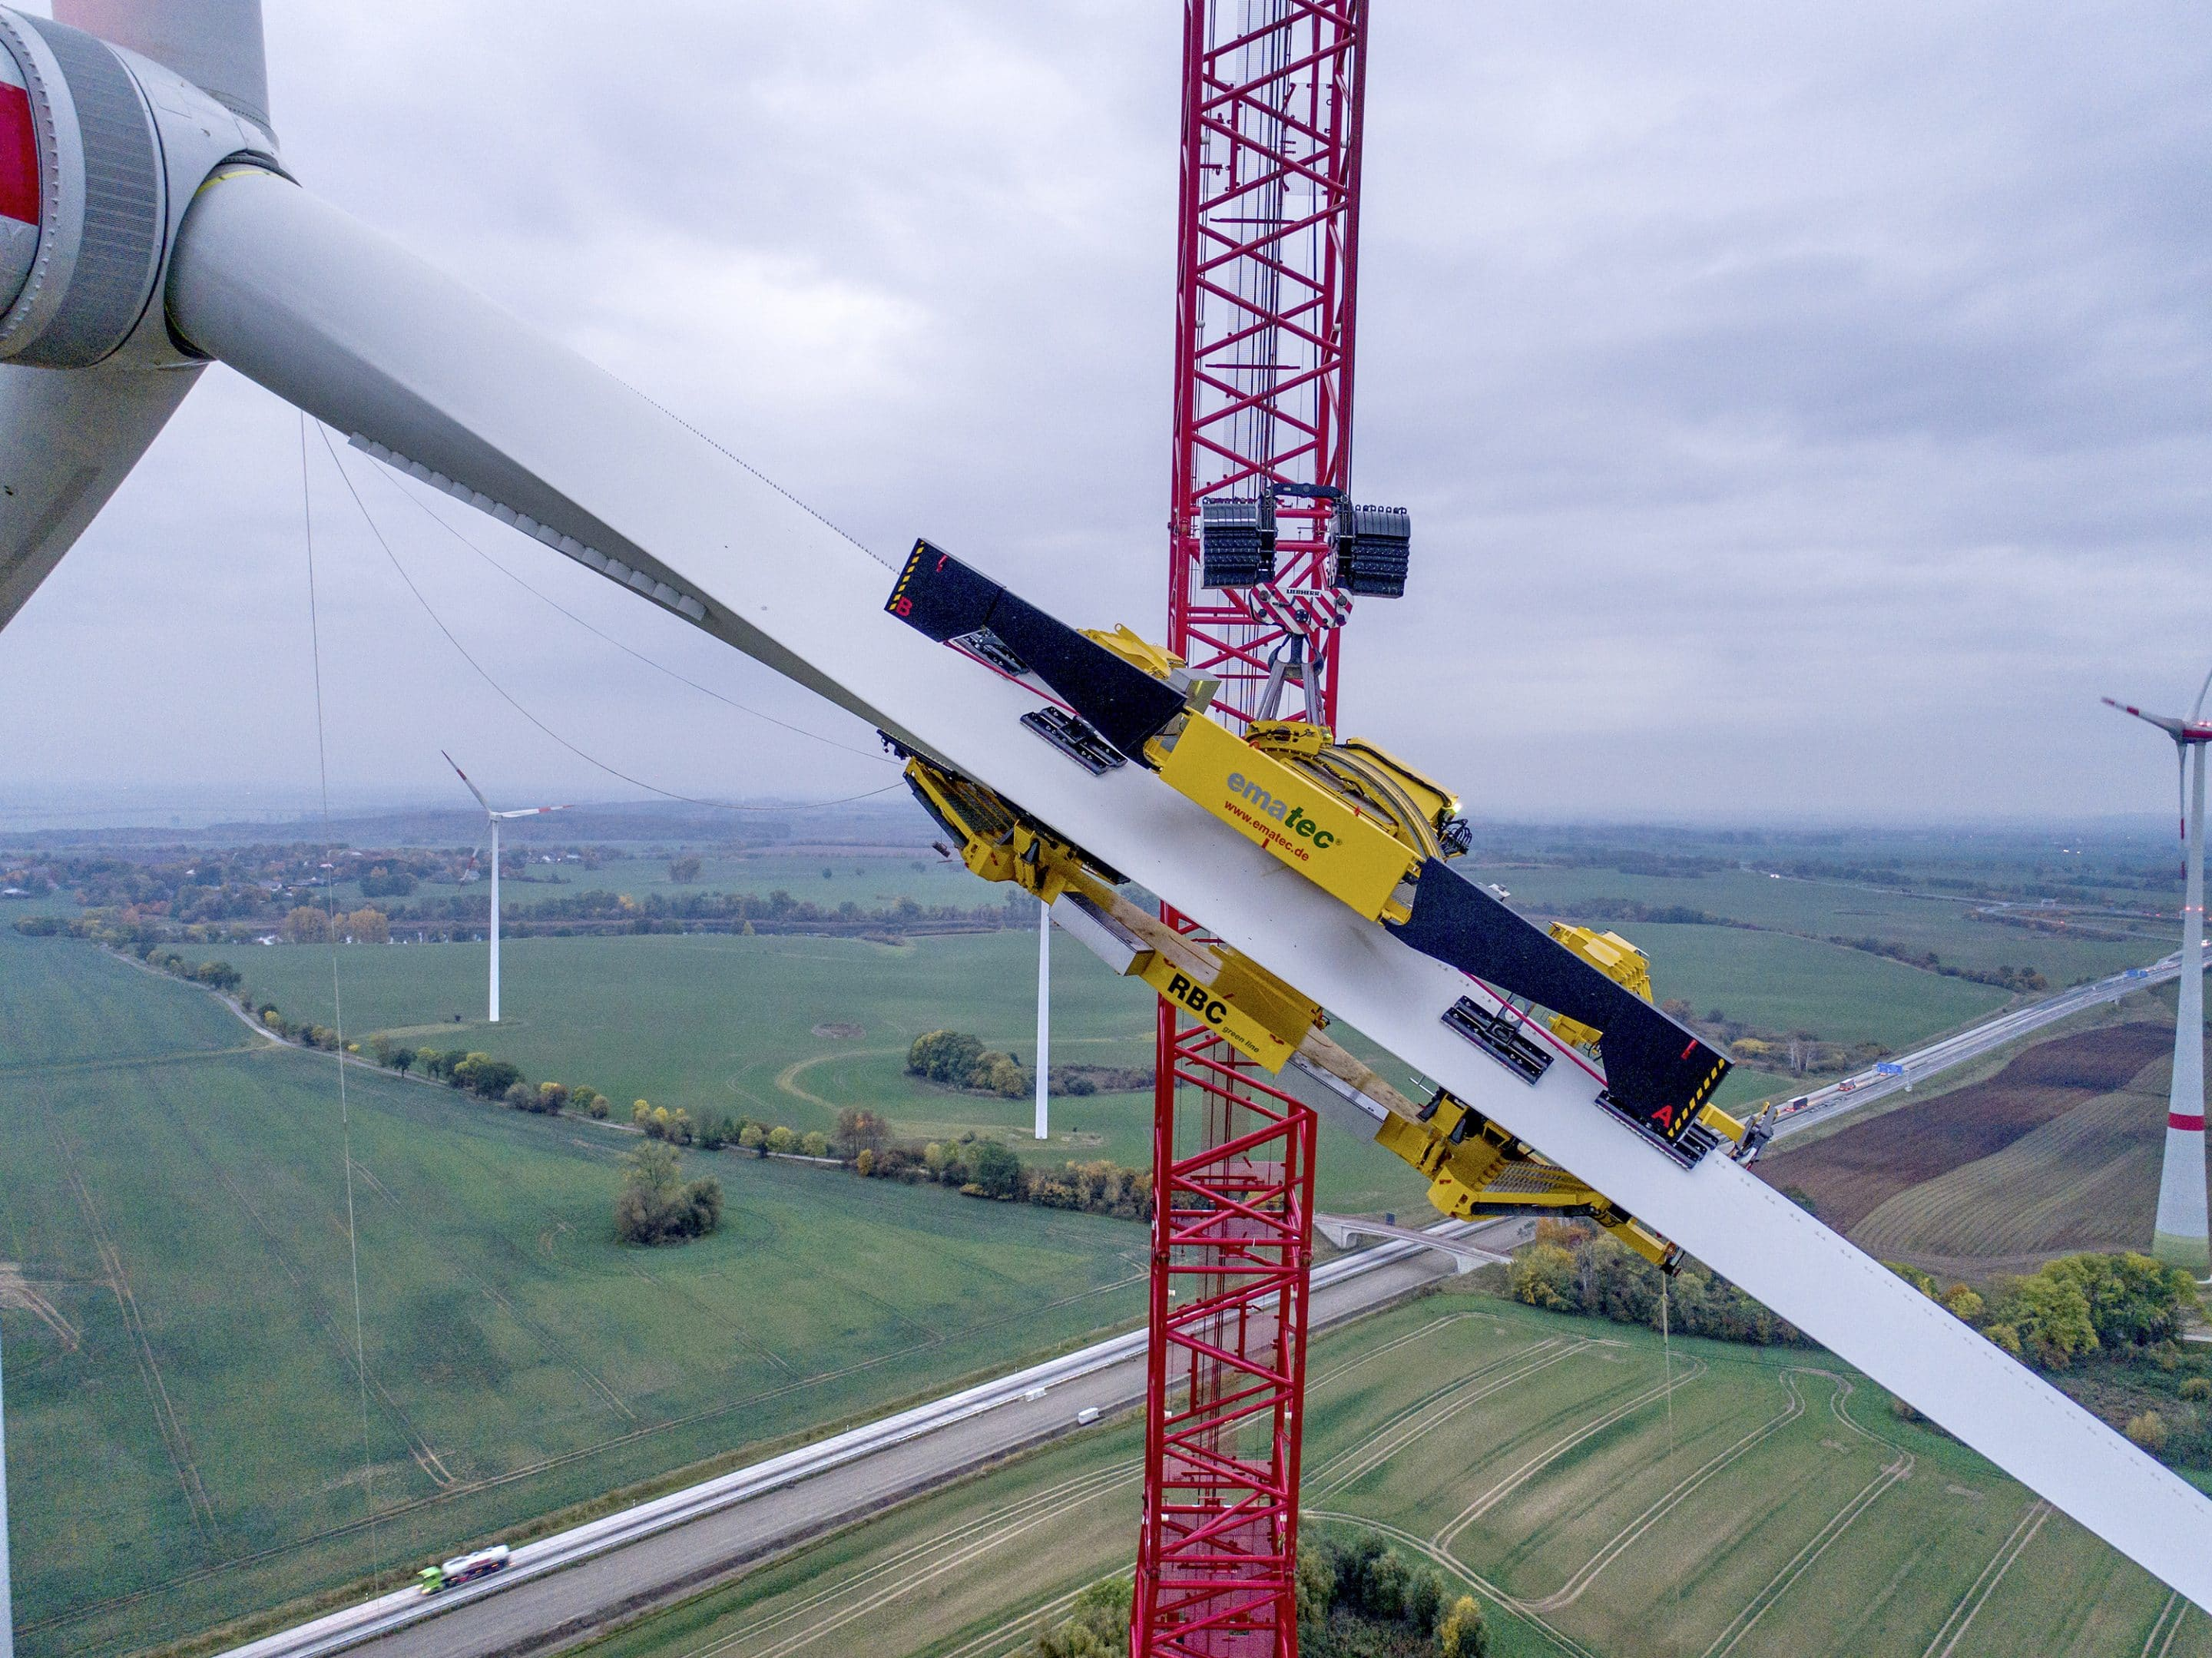 Emission-free: Enercon is the first one to use the new way of rotor blade assembling